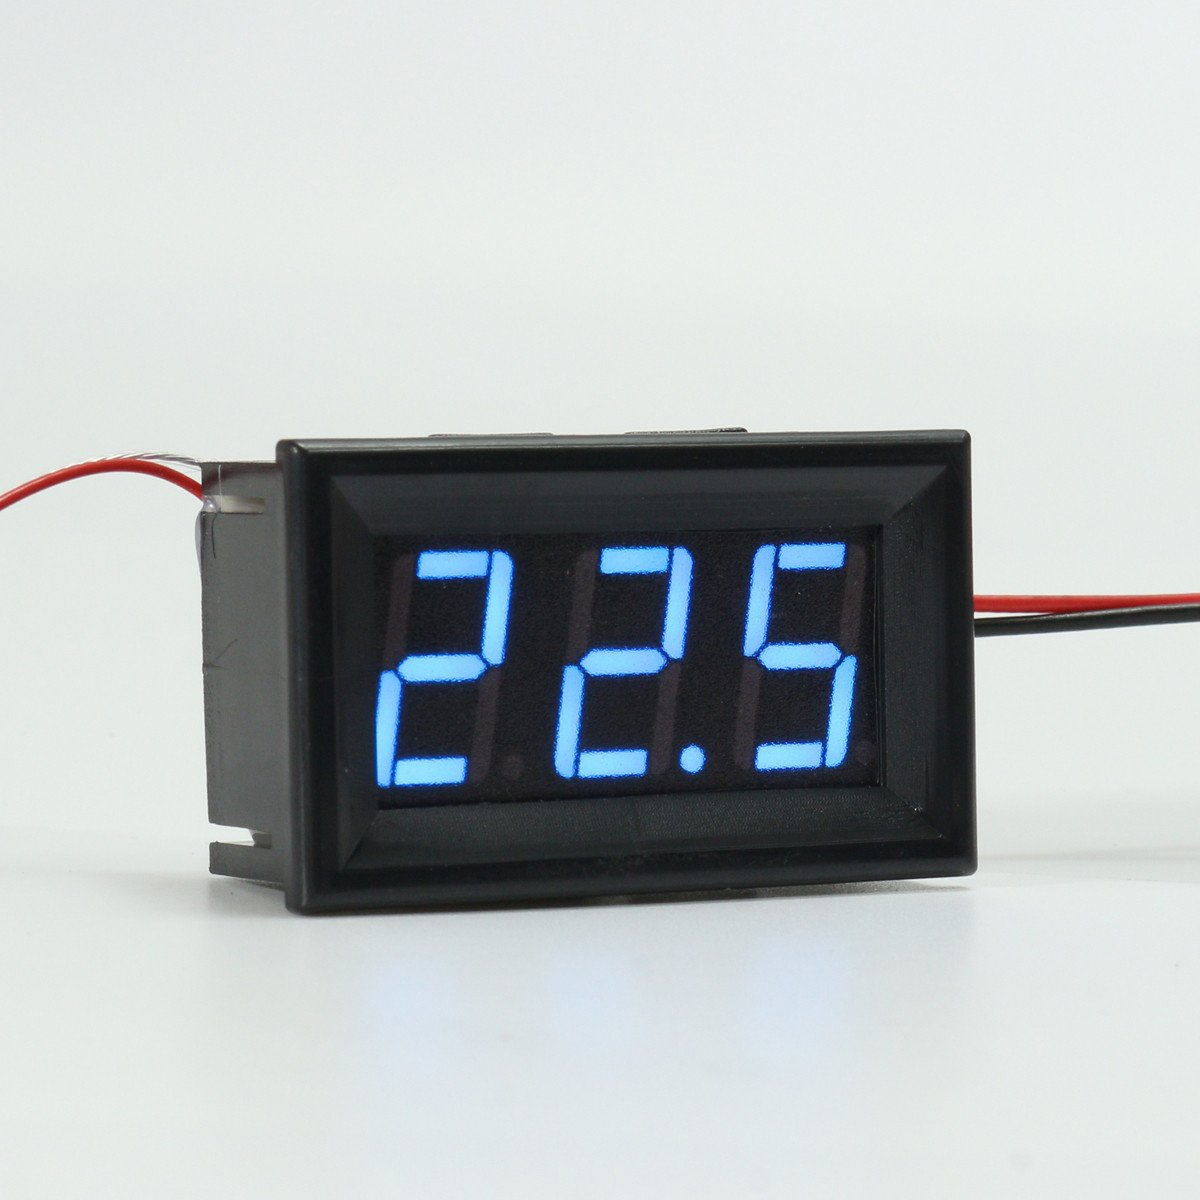 0.56inch 3 Bit -200~450℃ Digital LED Thermometer Temerature Tester PT100 Blue Backlight by GIMAX (Image #2)